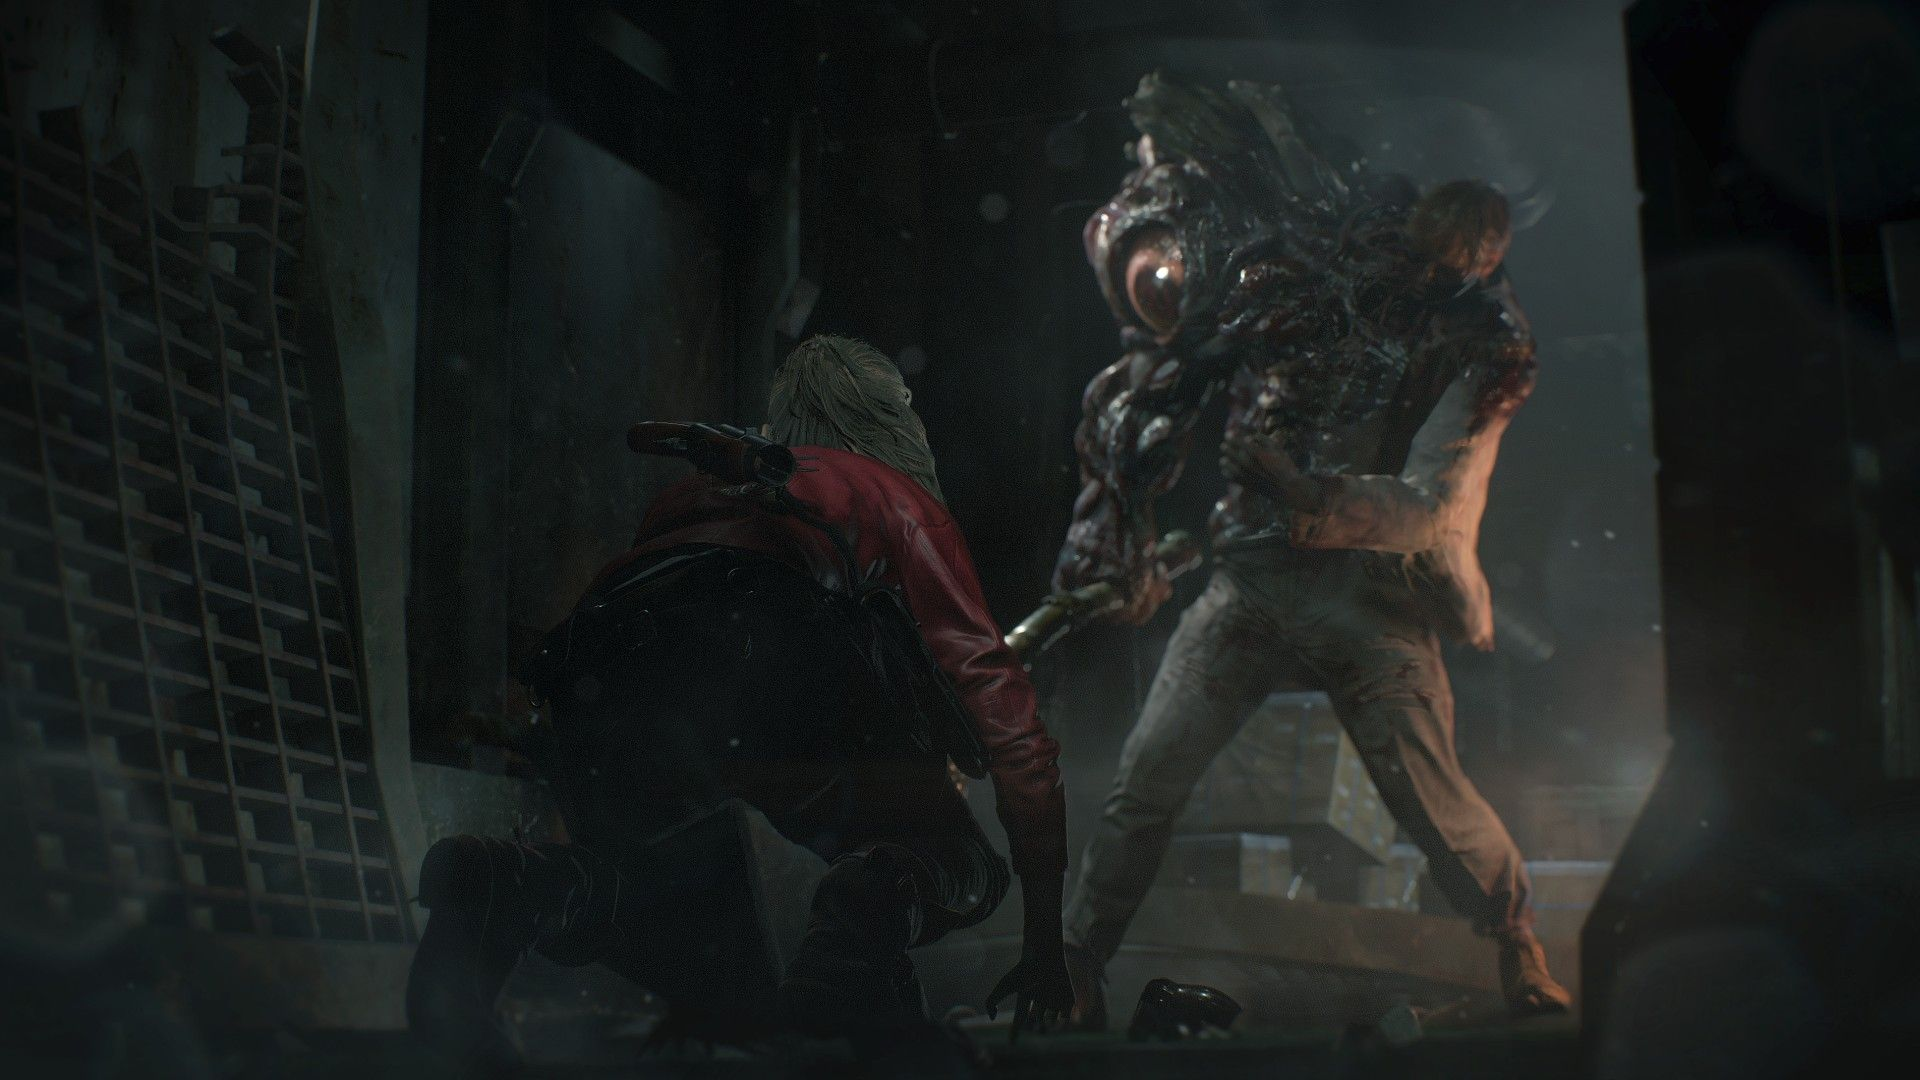 Resident Evil 2 Bosses Are Among The Most Iconic Villains With